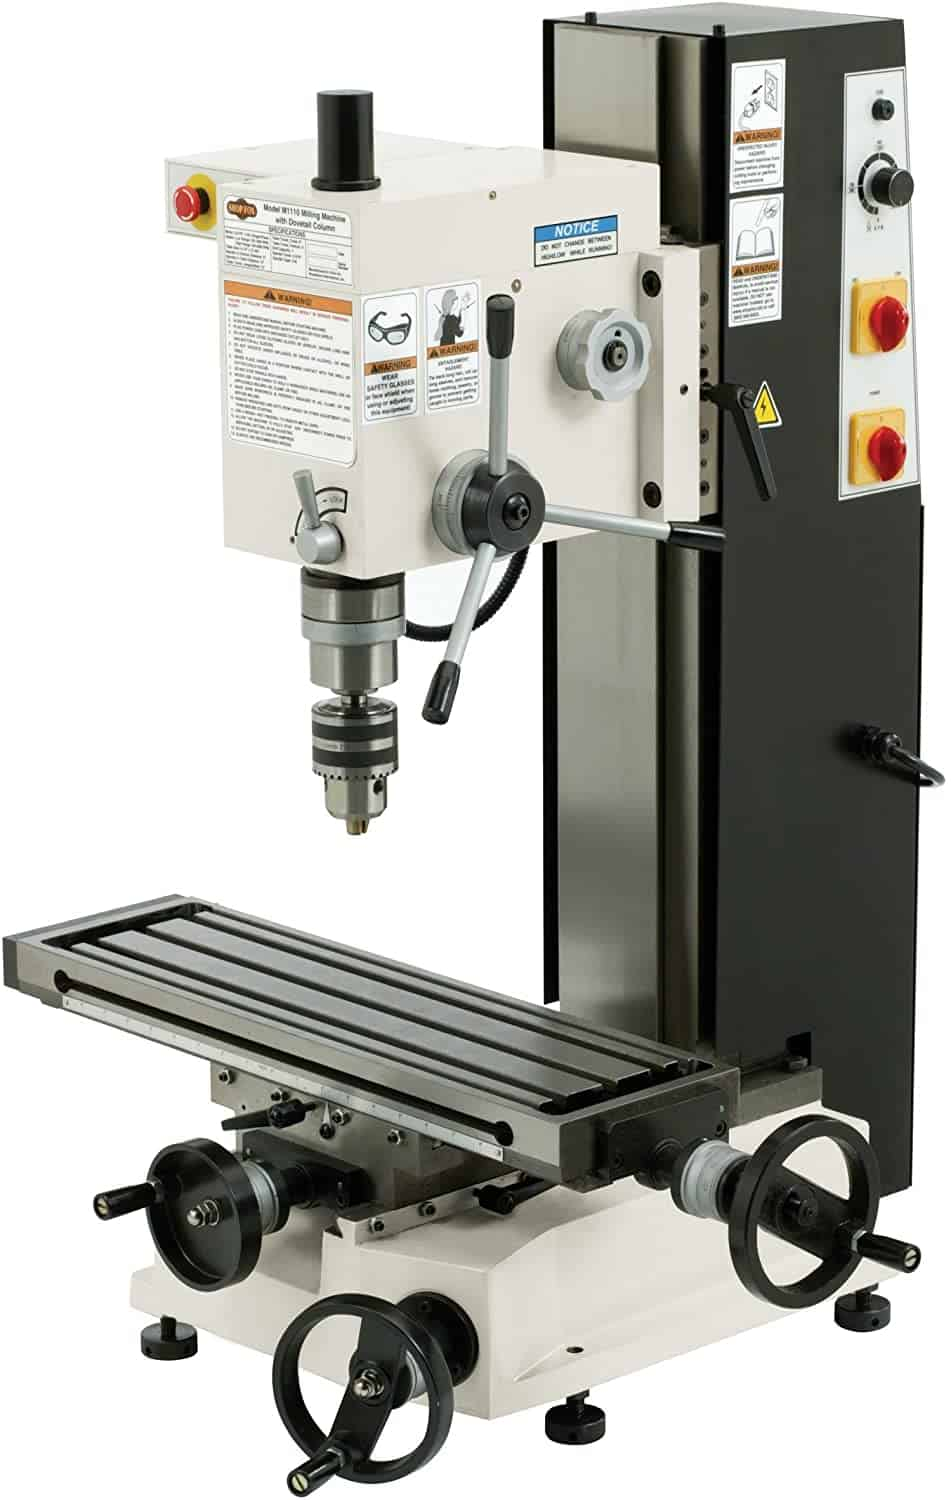 SHOP FOX M1110 6 Inch by 21 Inch Variable Speed Mill and Drill